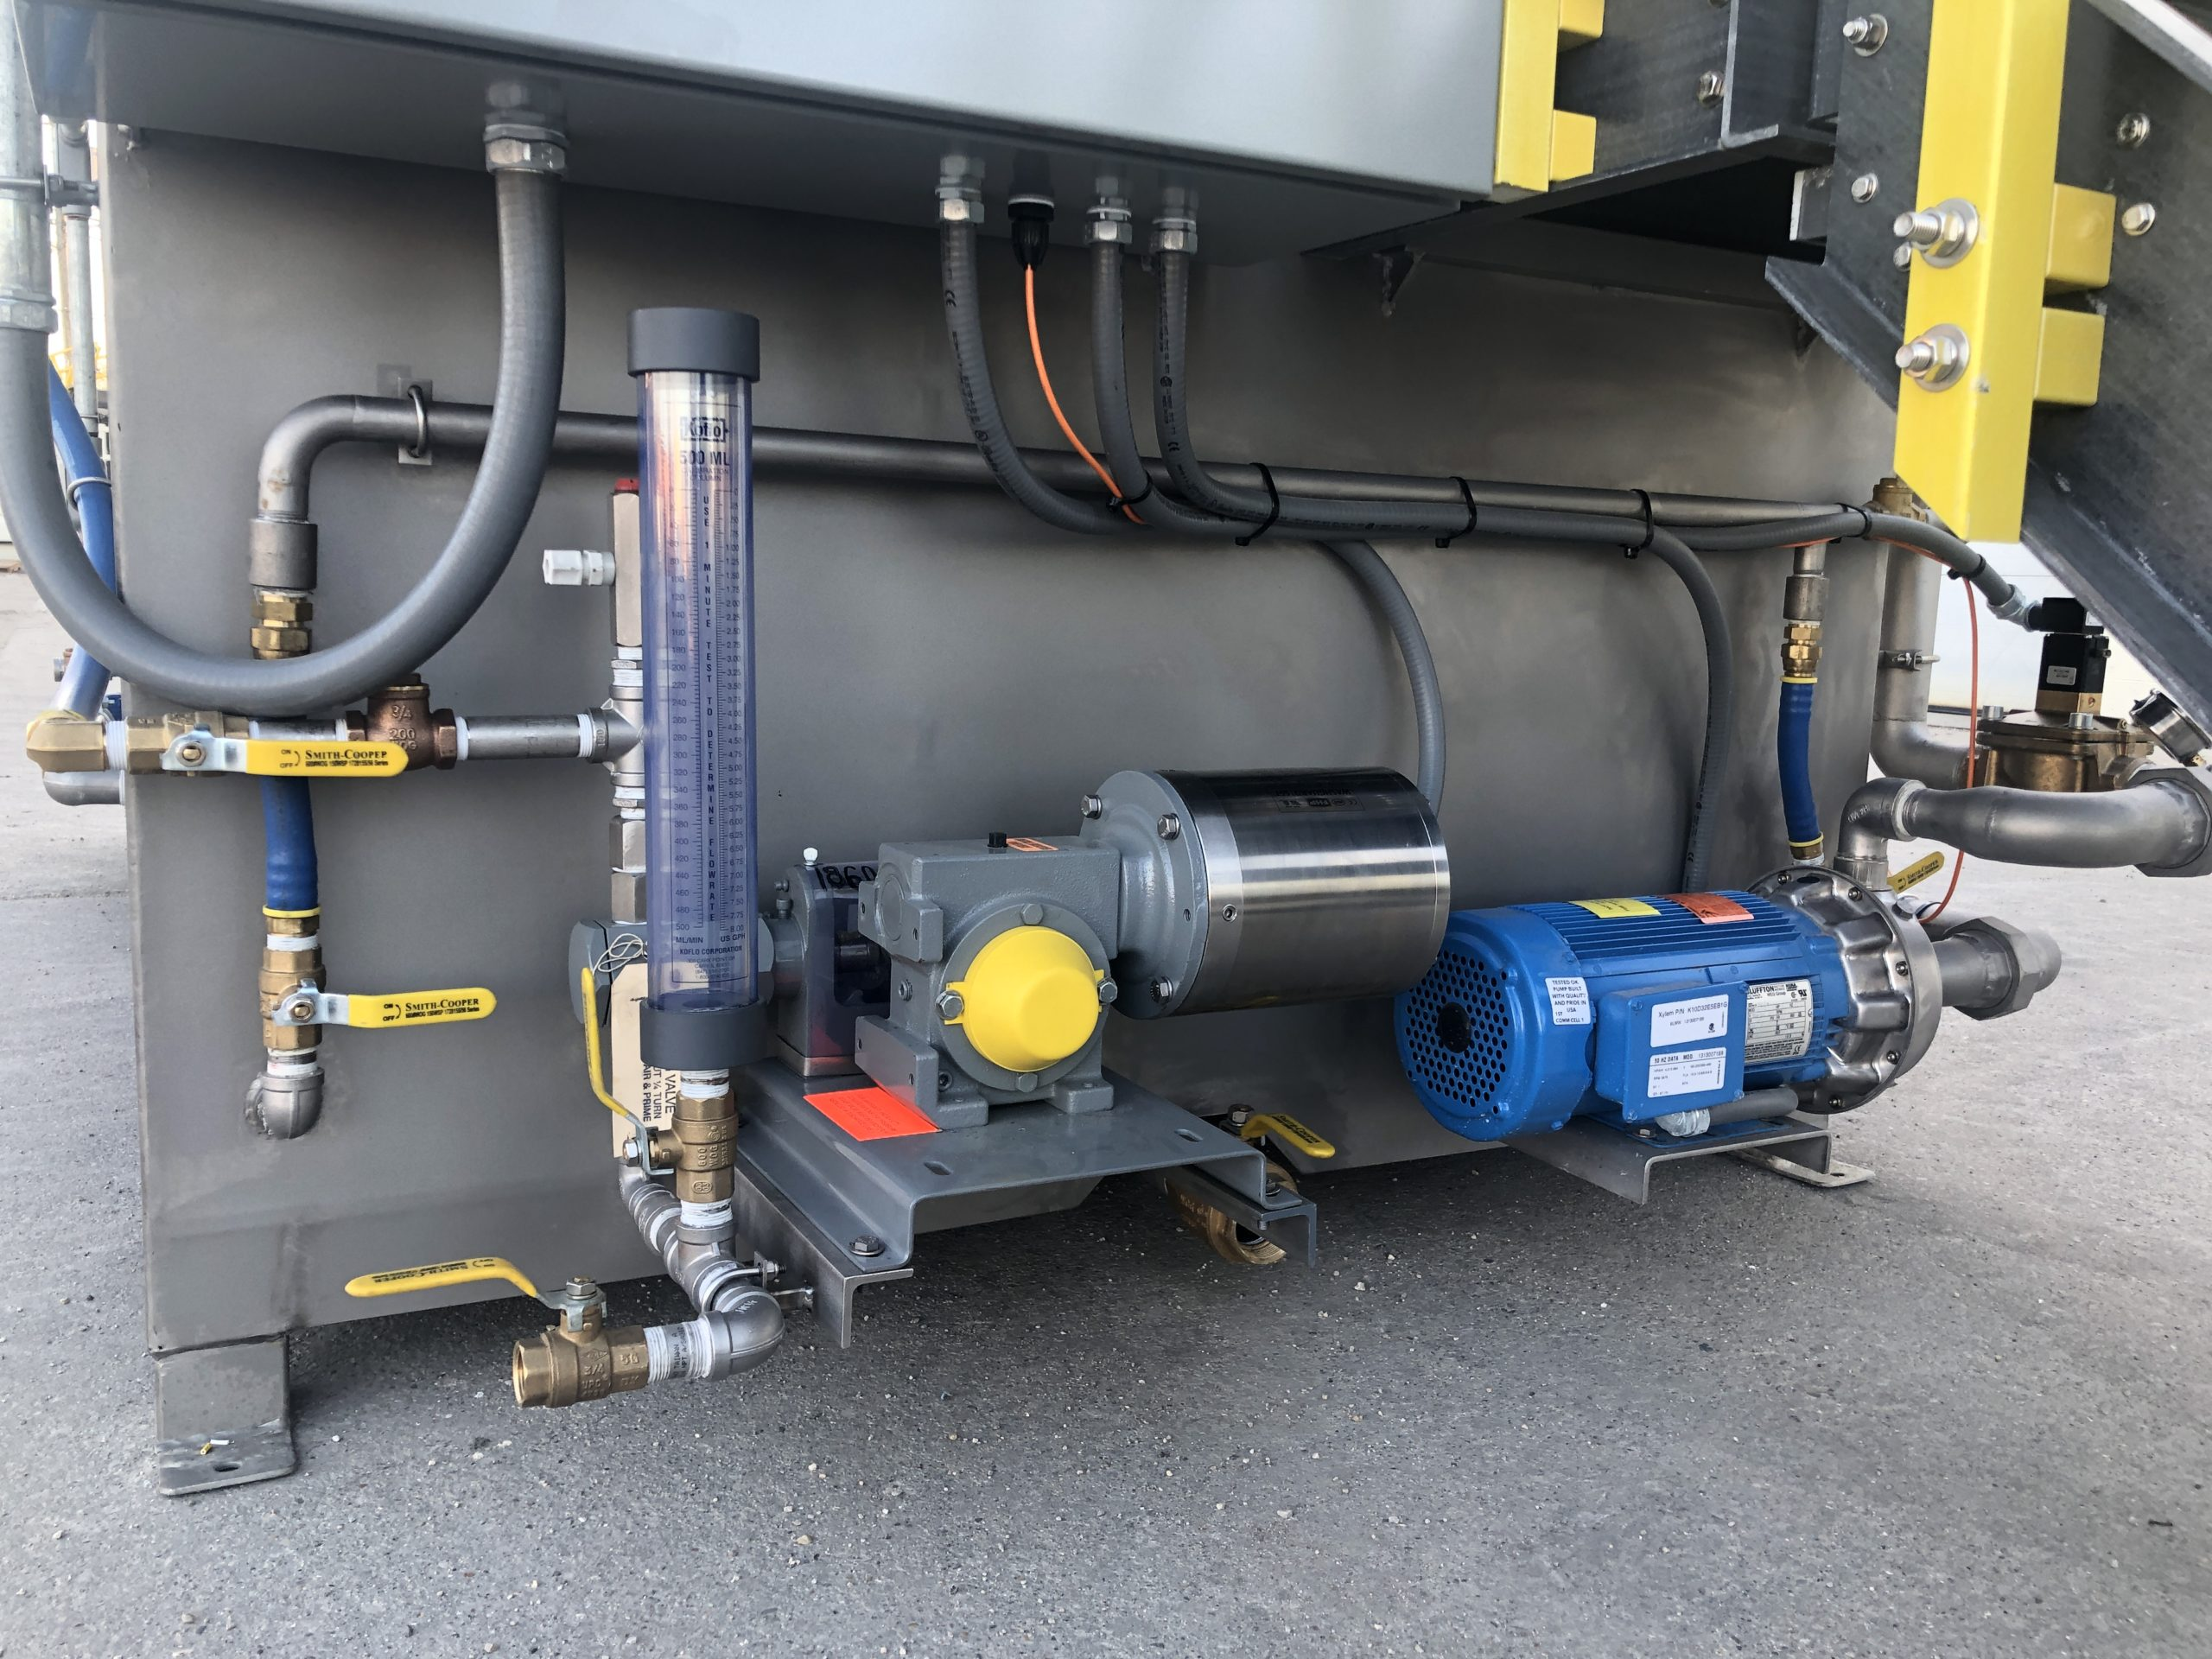 A close up vies of the liquid polymer calibration column and pump that is attached to the larger bodied dry polymer system.